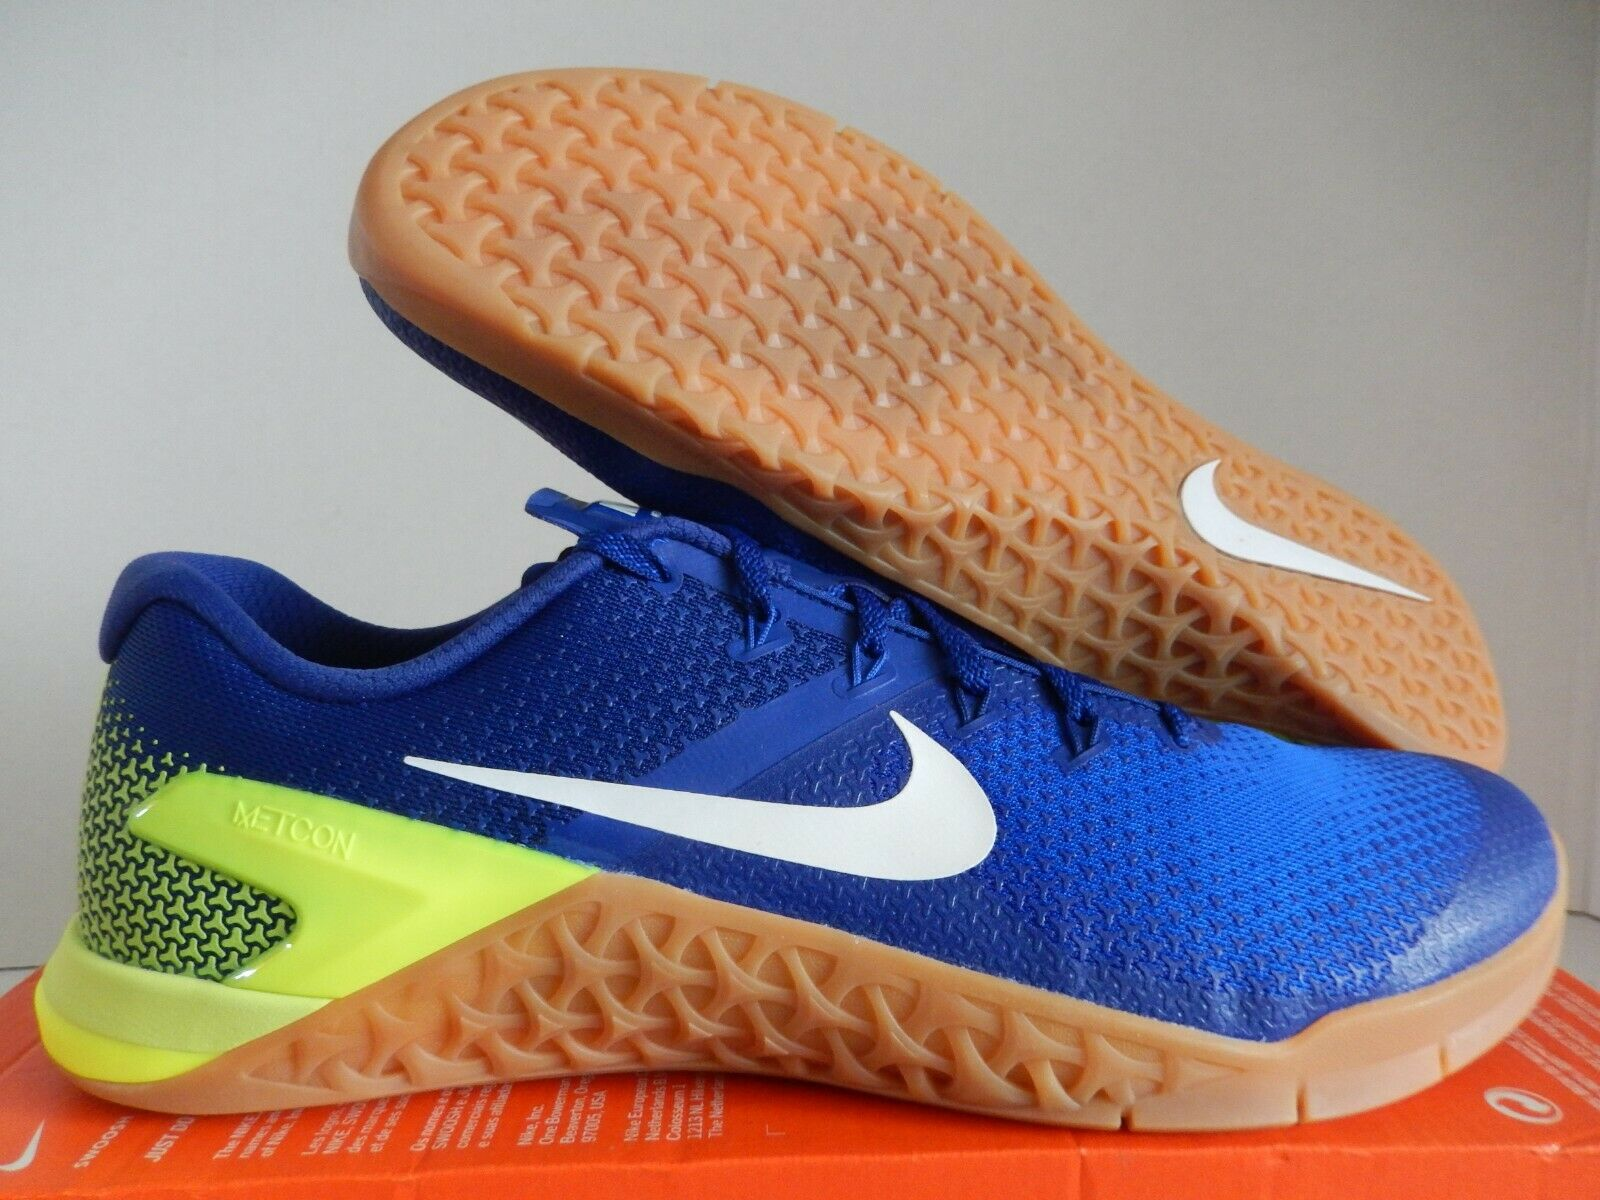 NIKE METCON 4 VOLT-WHITE-RACER blueE  WEIGHTLIFTING  SZ 15